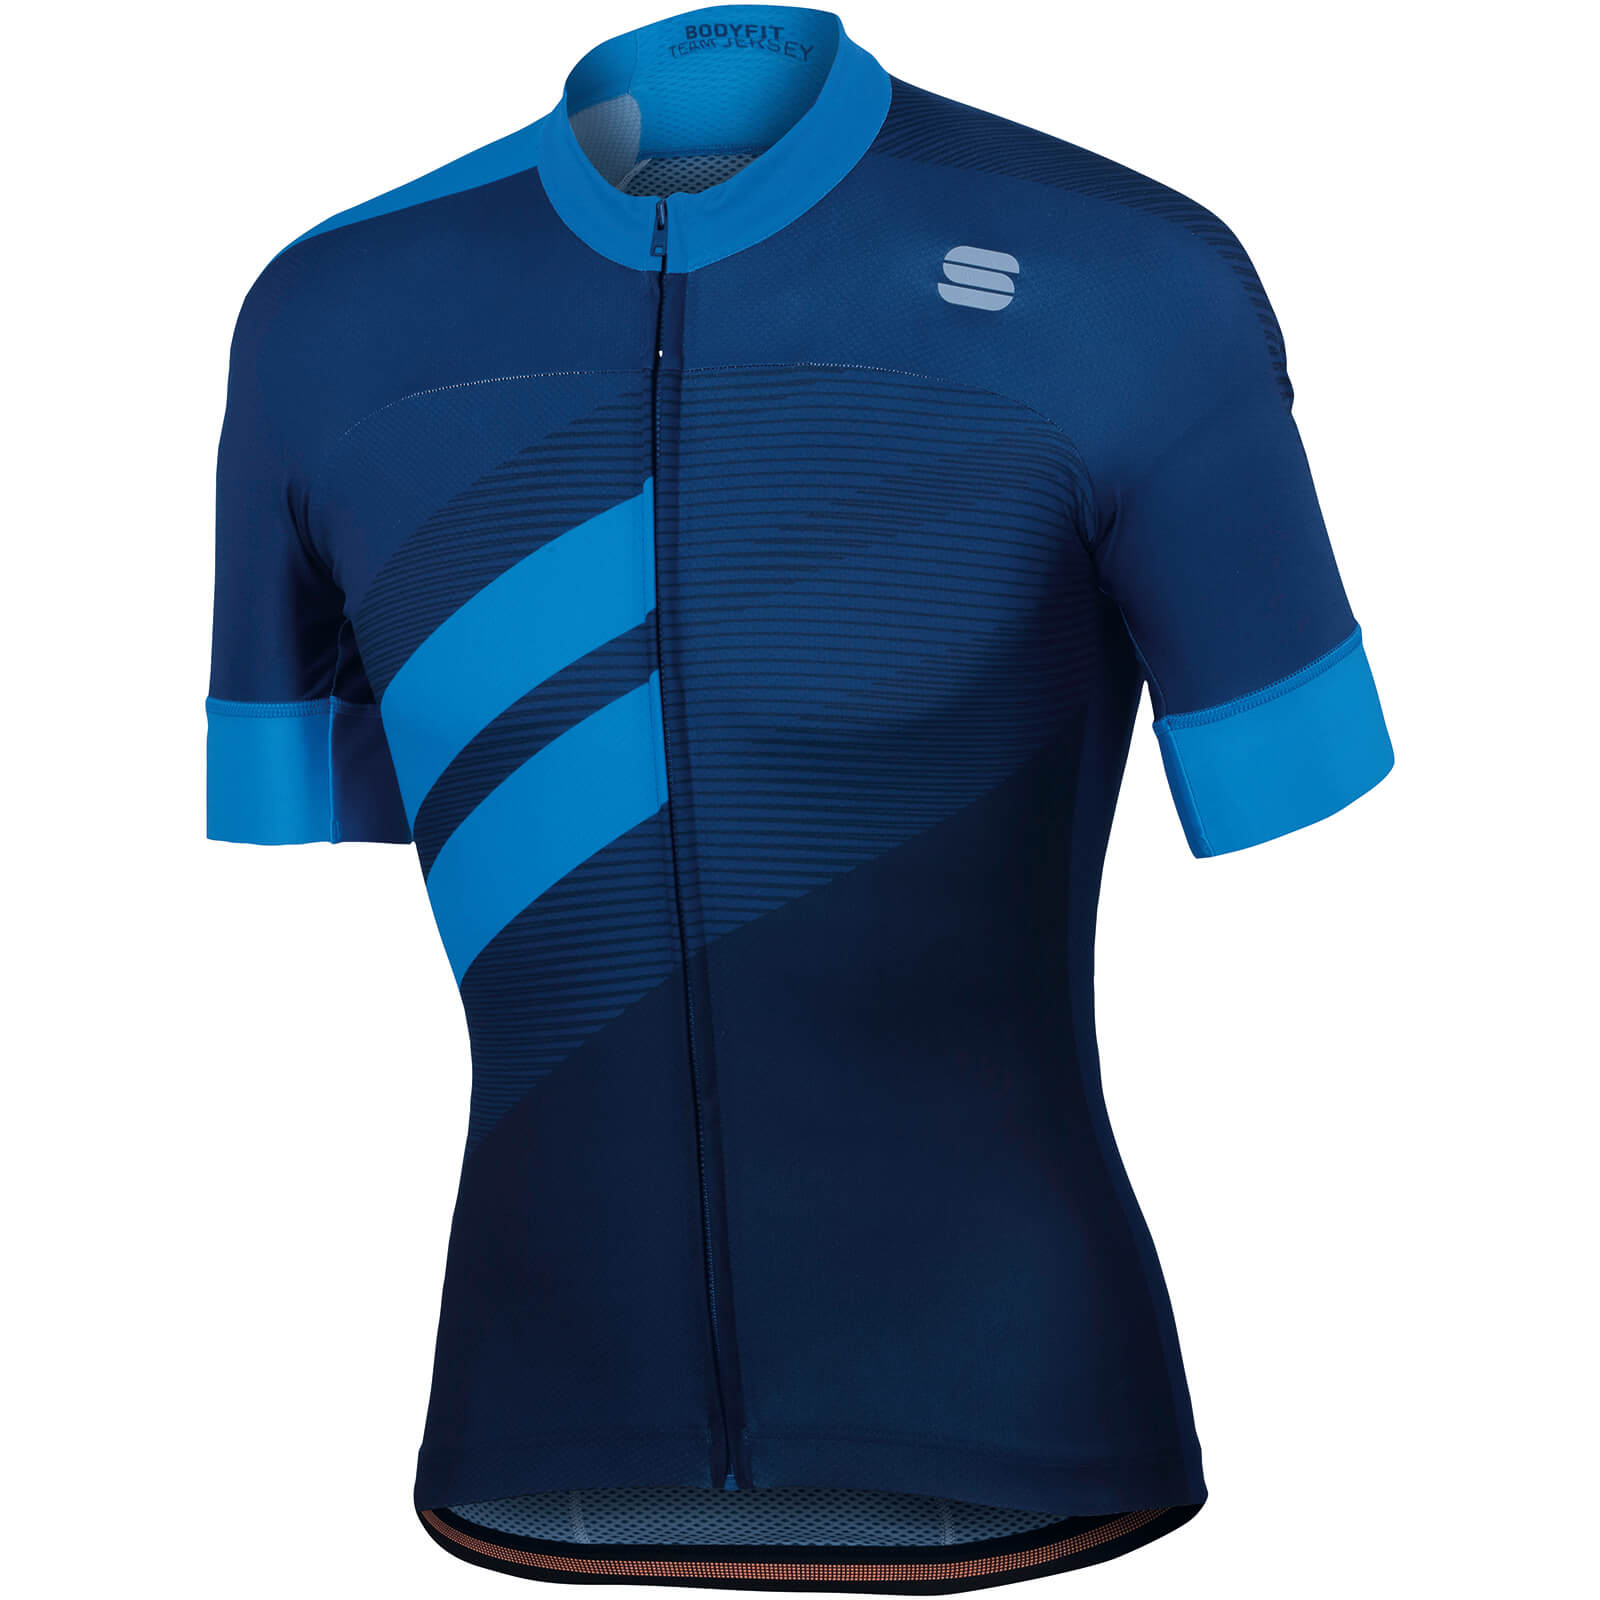 Sportful BodyFit Team Jersey - Twilight Blue/Electric Blue